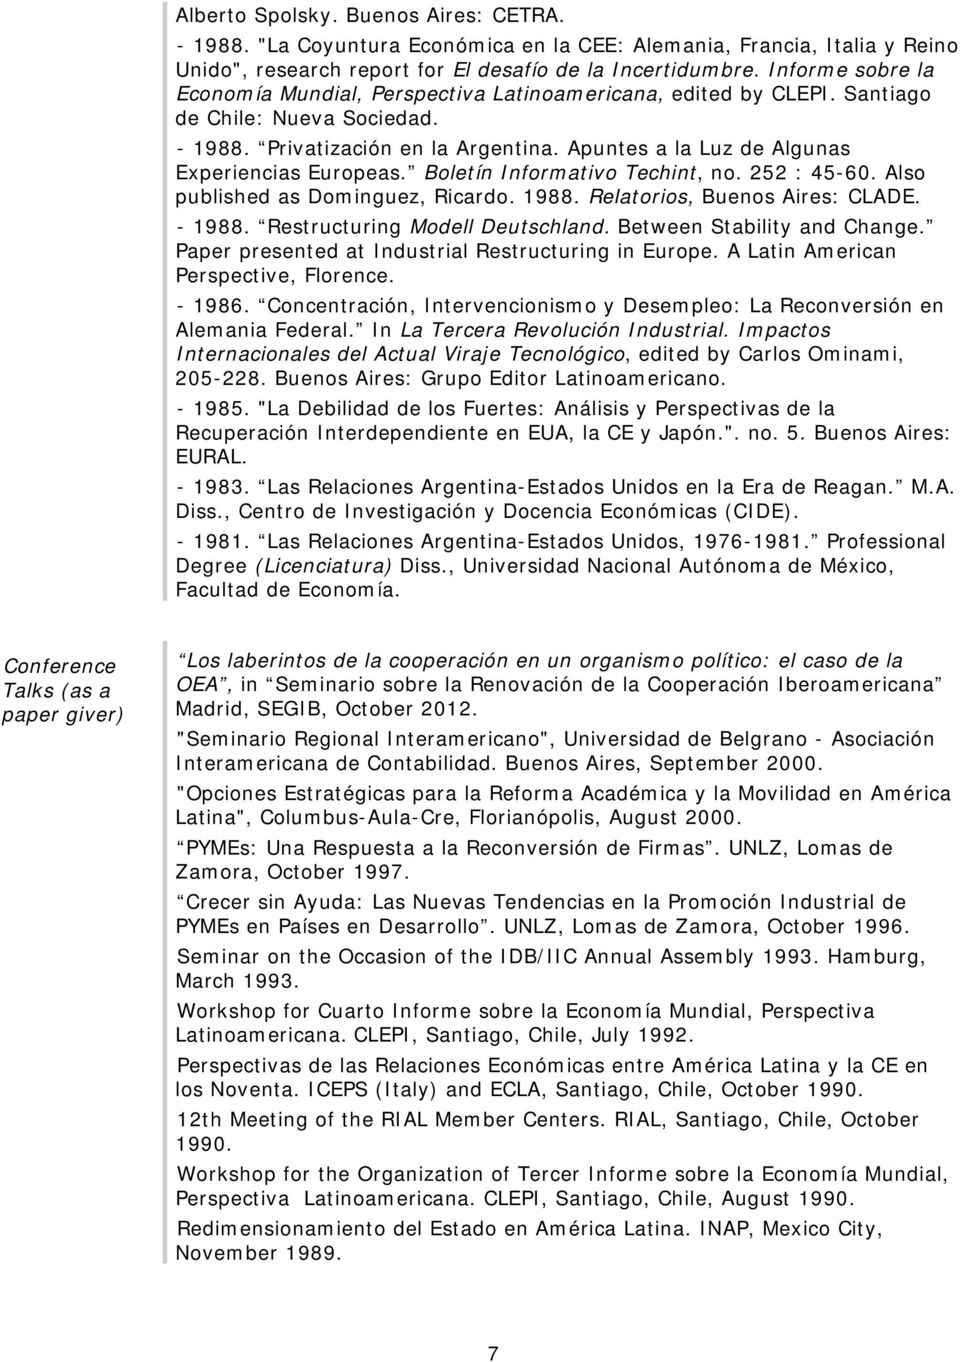 Apuntes a la Luz de Algunas Experiencias Europeas. Boletín Informativo Techint, no. 252 : 45-60. Also published as Dominguez, Ricardo. 1988. Relatorios, : CLADE. - 1988.